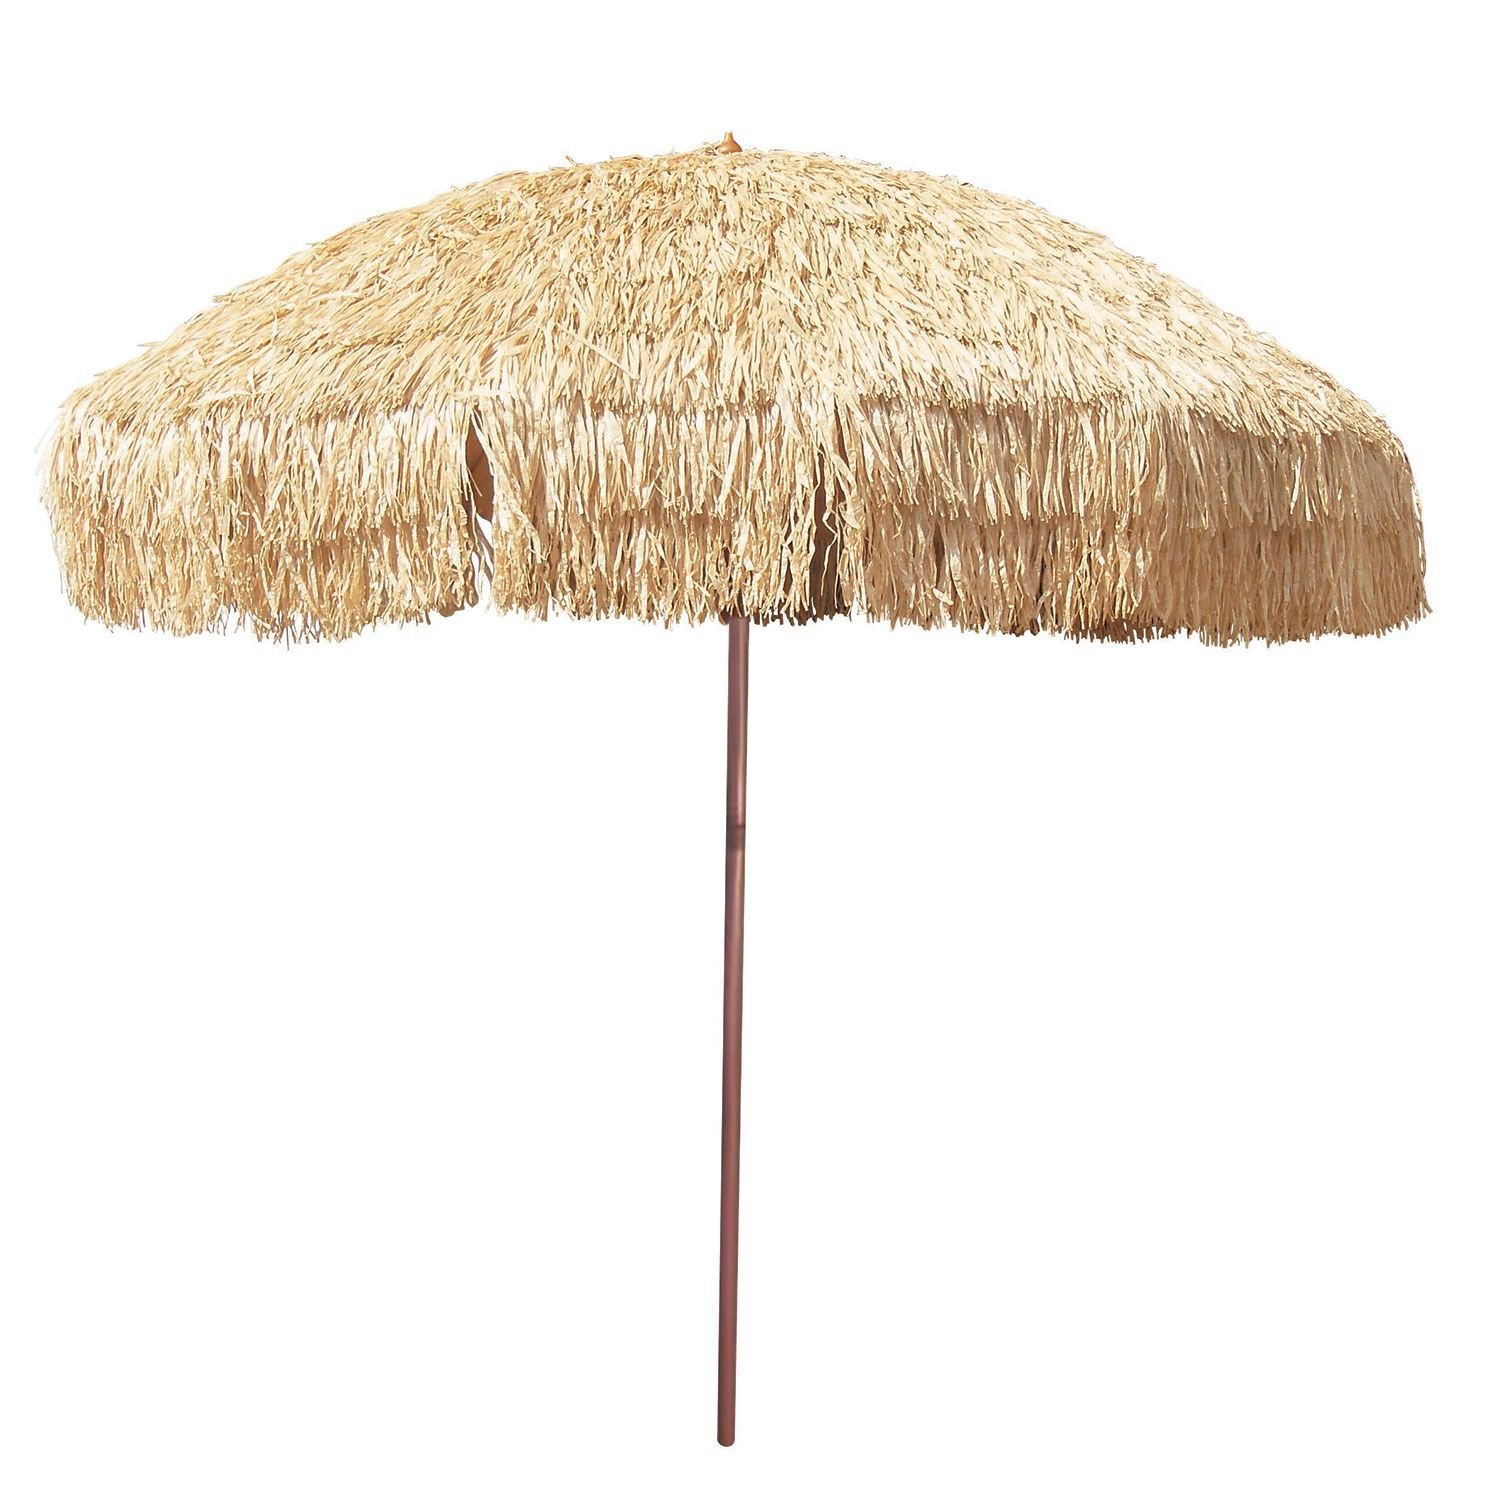 8 Hula Umbrella Thatched Tiki Patio Umbrella Natural Color 8 Foot Diameter Tropical Look Aluminum Pole 16 Fiberglass Ribs